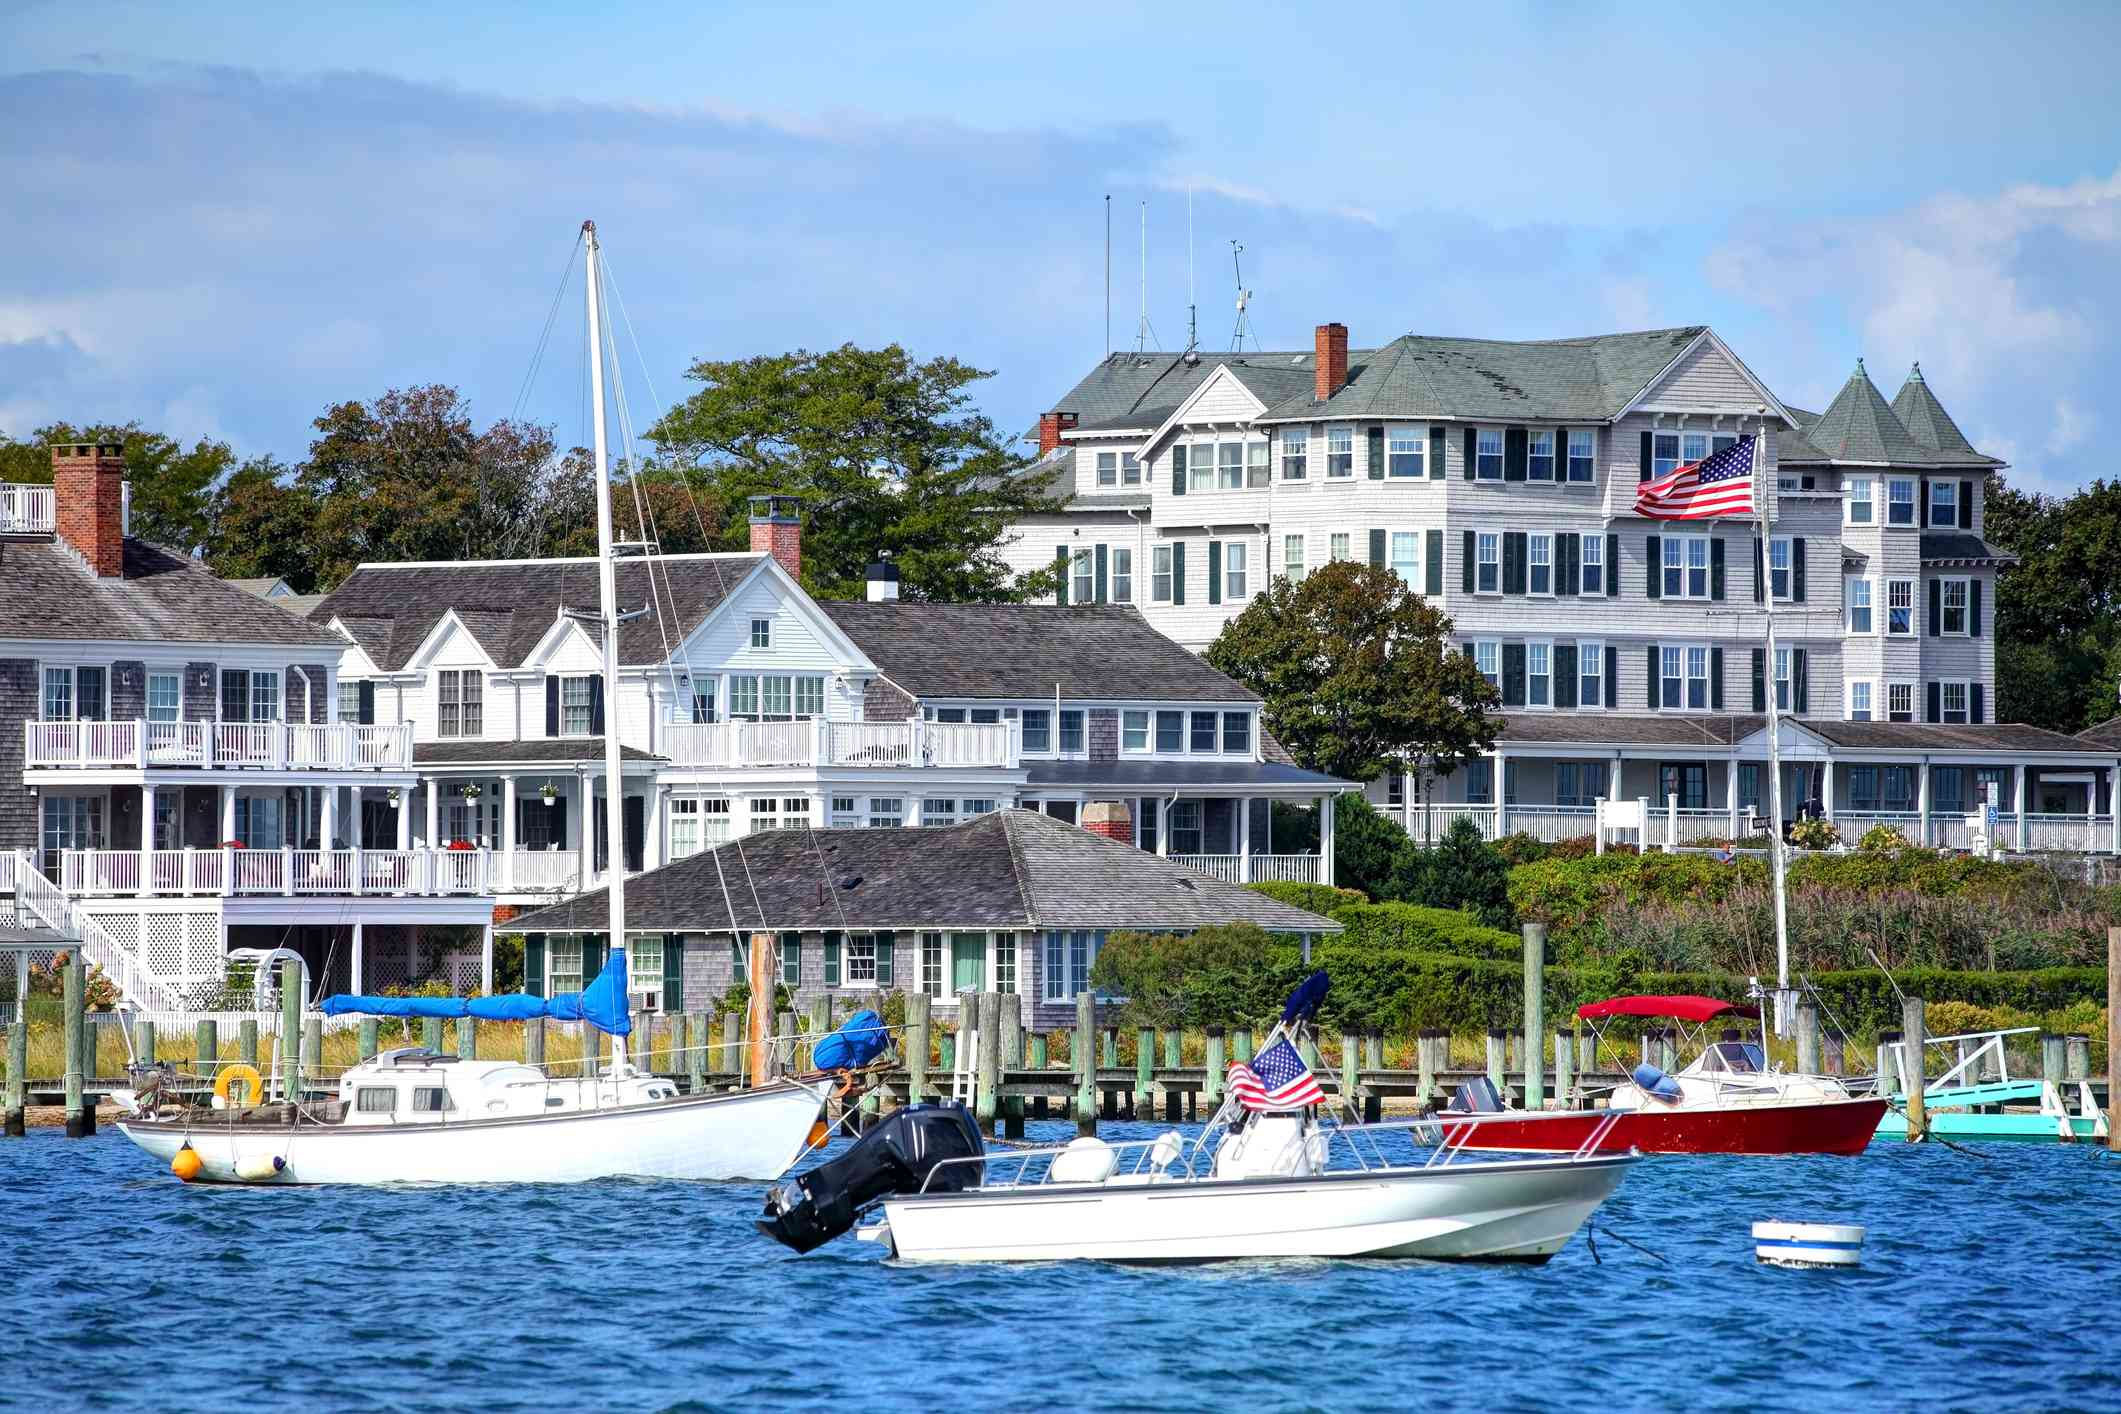 boats in a harbor with large greek revival-style houses in Edgartown, Martha's Vineyard